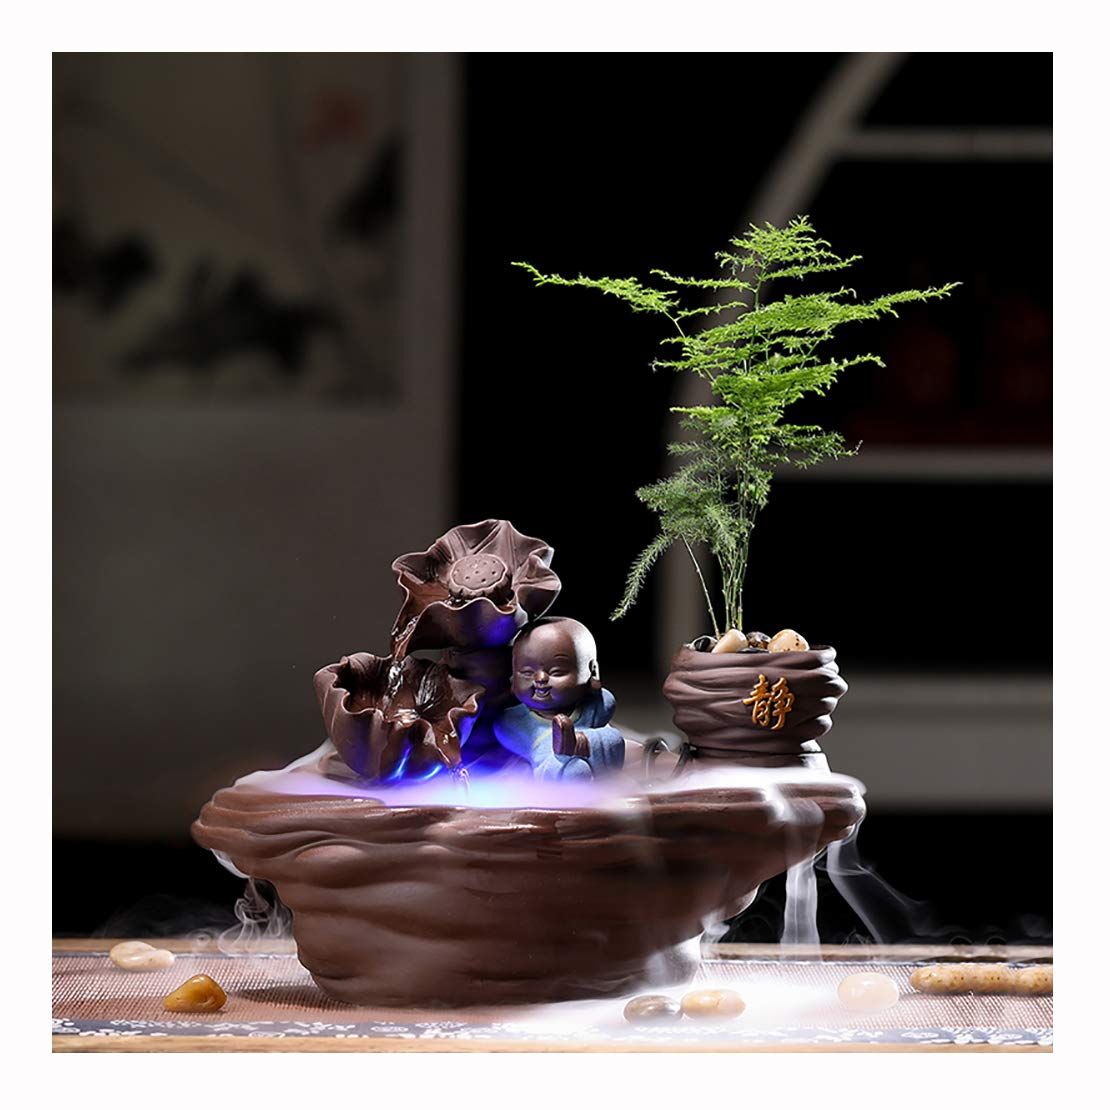 B Modern Style Indoor Fountain, ceramic Feng Shui Ornaments, Great For Home Ornament, Ideal Birthday, Anniversary or Wedding Present,B